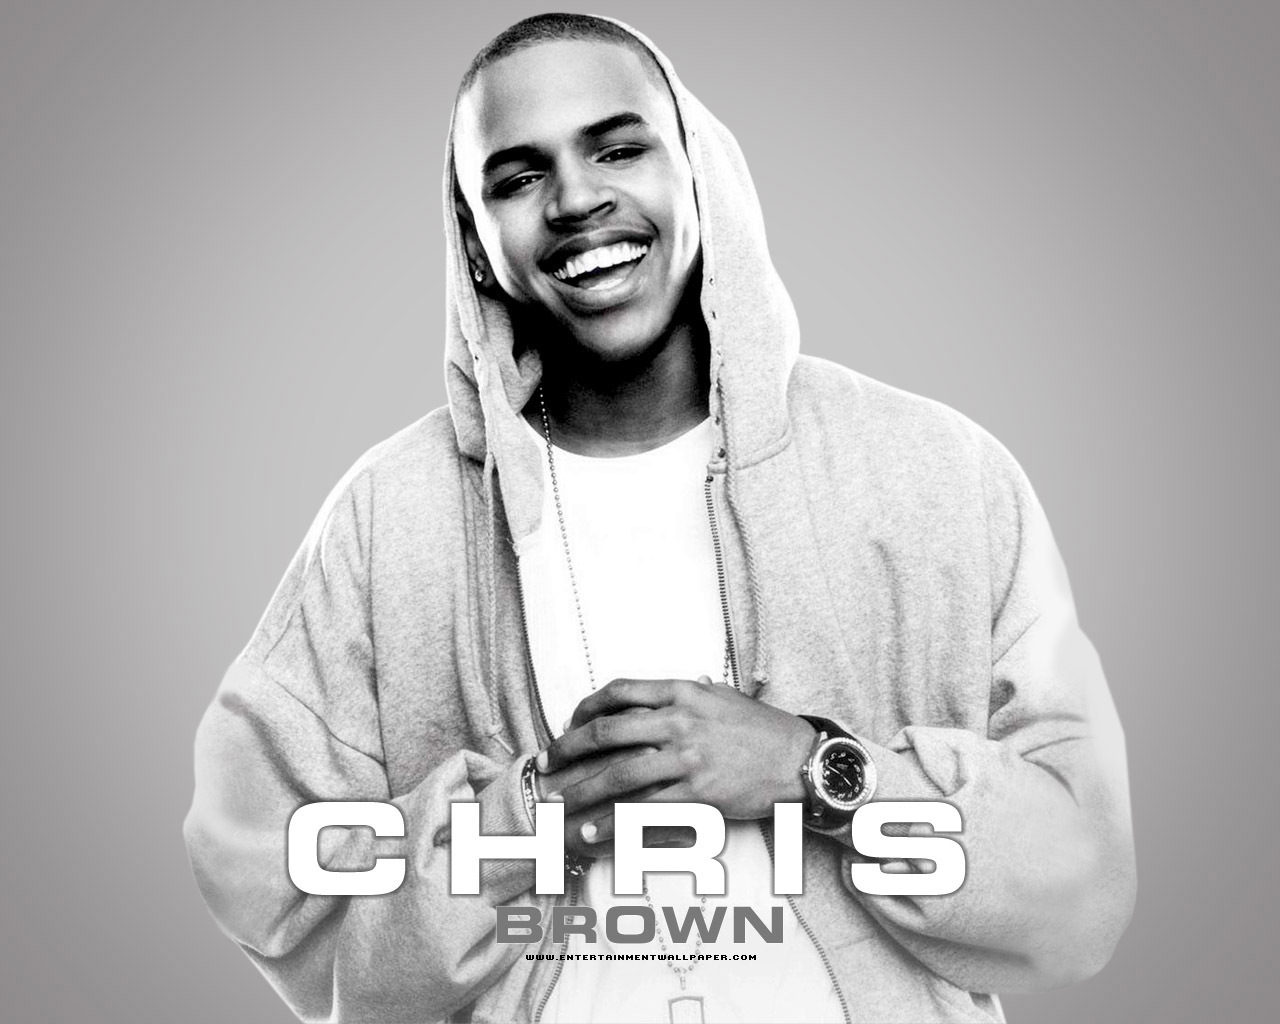 http://1.bp.blogspot.com/-utZHhrfQ-pA/T5lp4ELDC3I/AAAAAAAAAIE/DCRDR7v9XPw/s1600/Chris+Brown+wallpapers+10.jpg